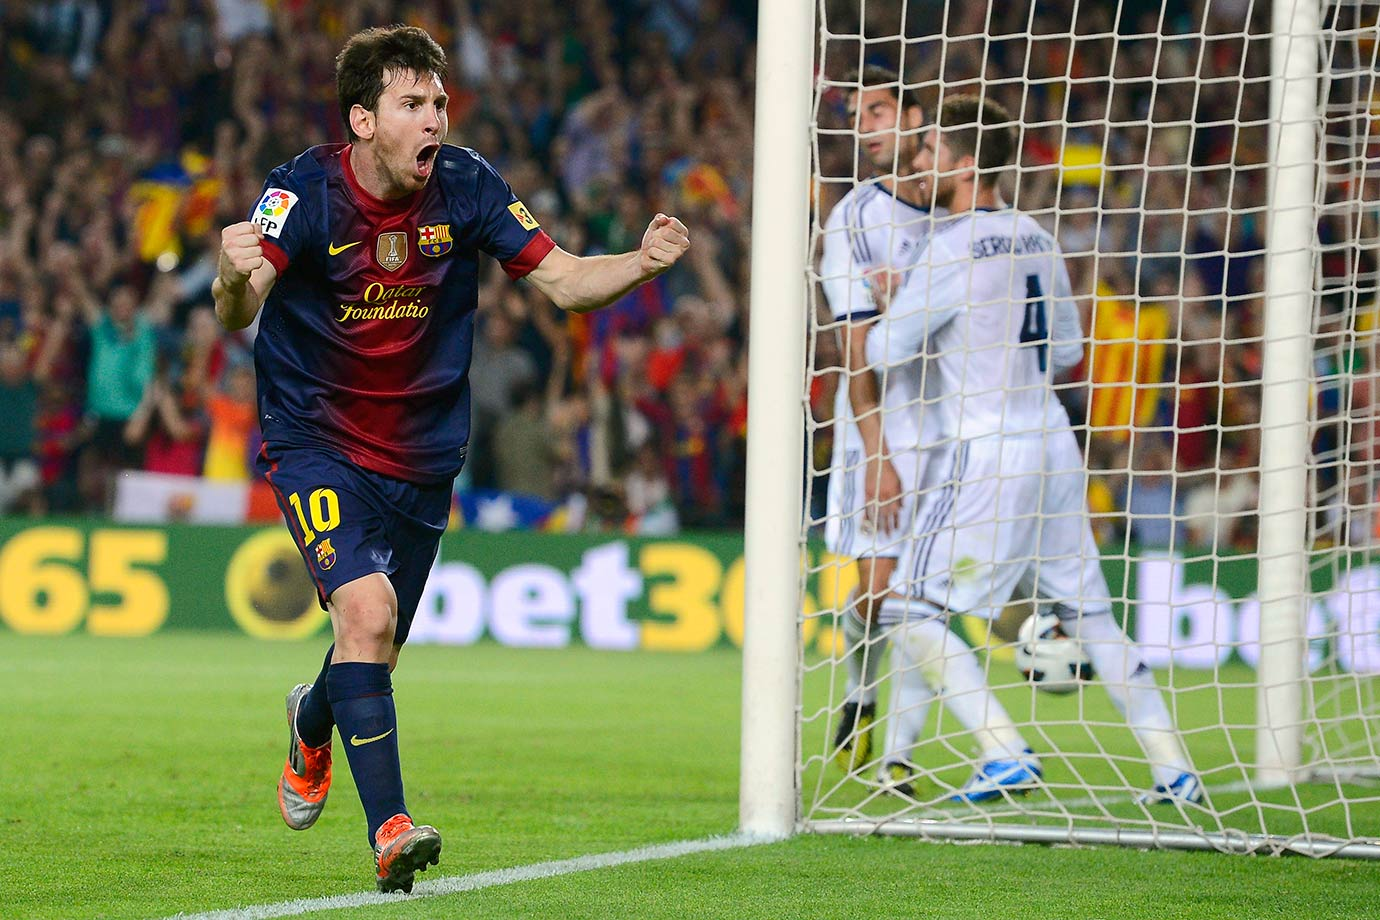 Barcelona's Lionel Messi celebrates after scoring against Real Madrid during their La Liga match on Oct. 7, 2012 at the Camp Nou stadium in Barcelona, Spain.